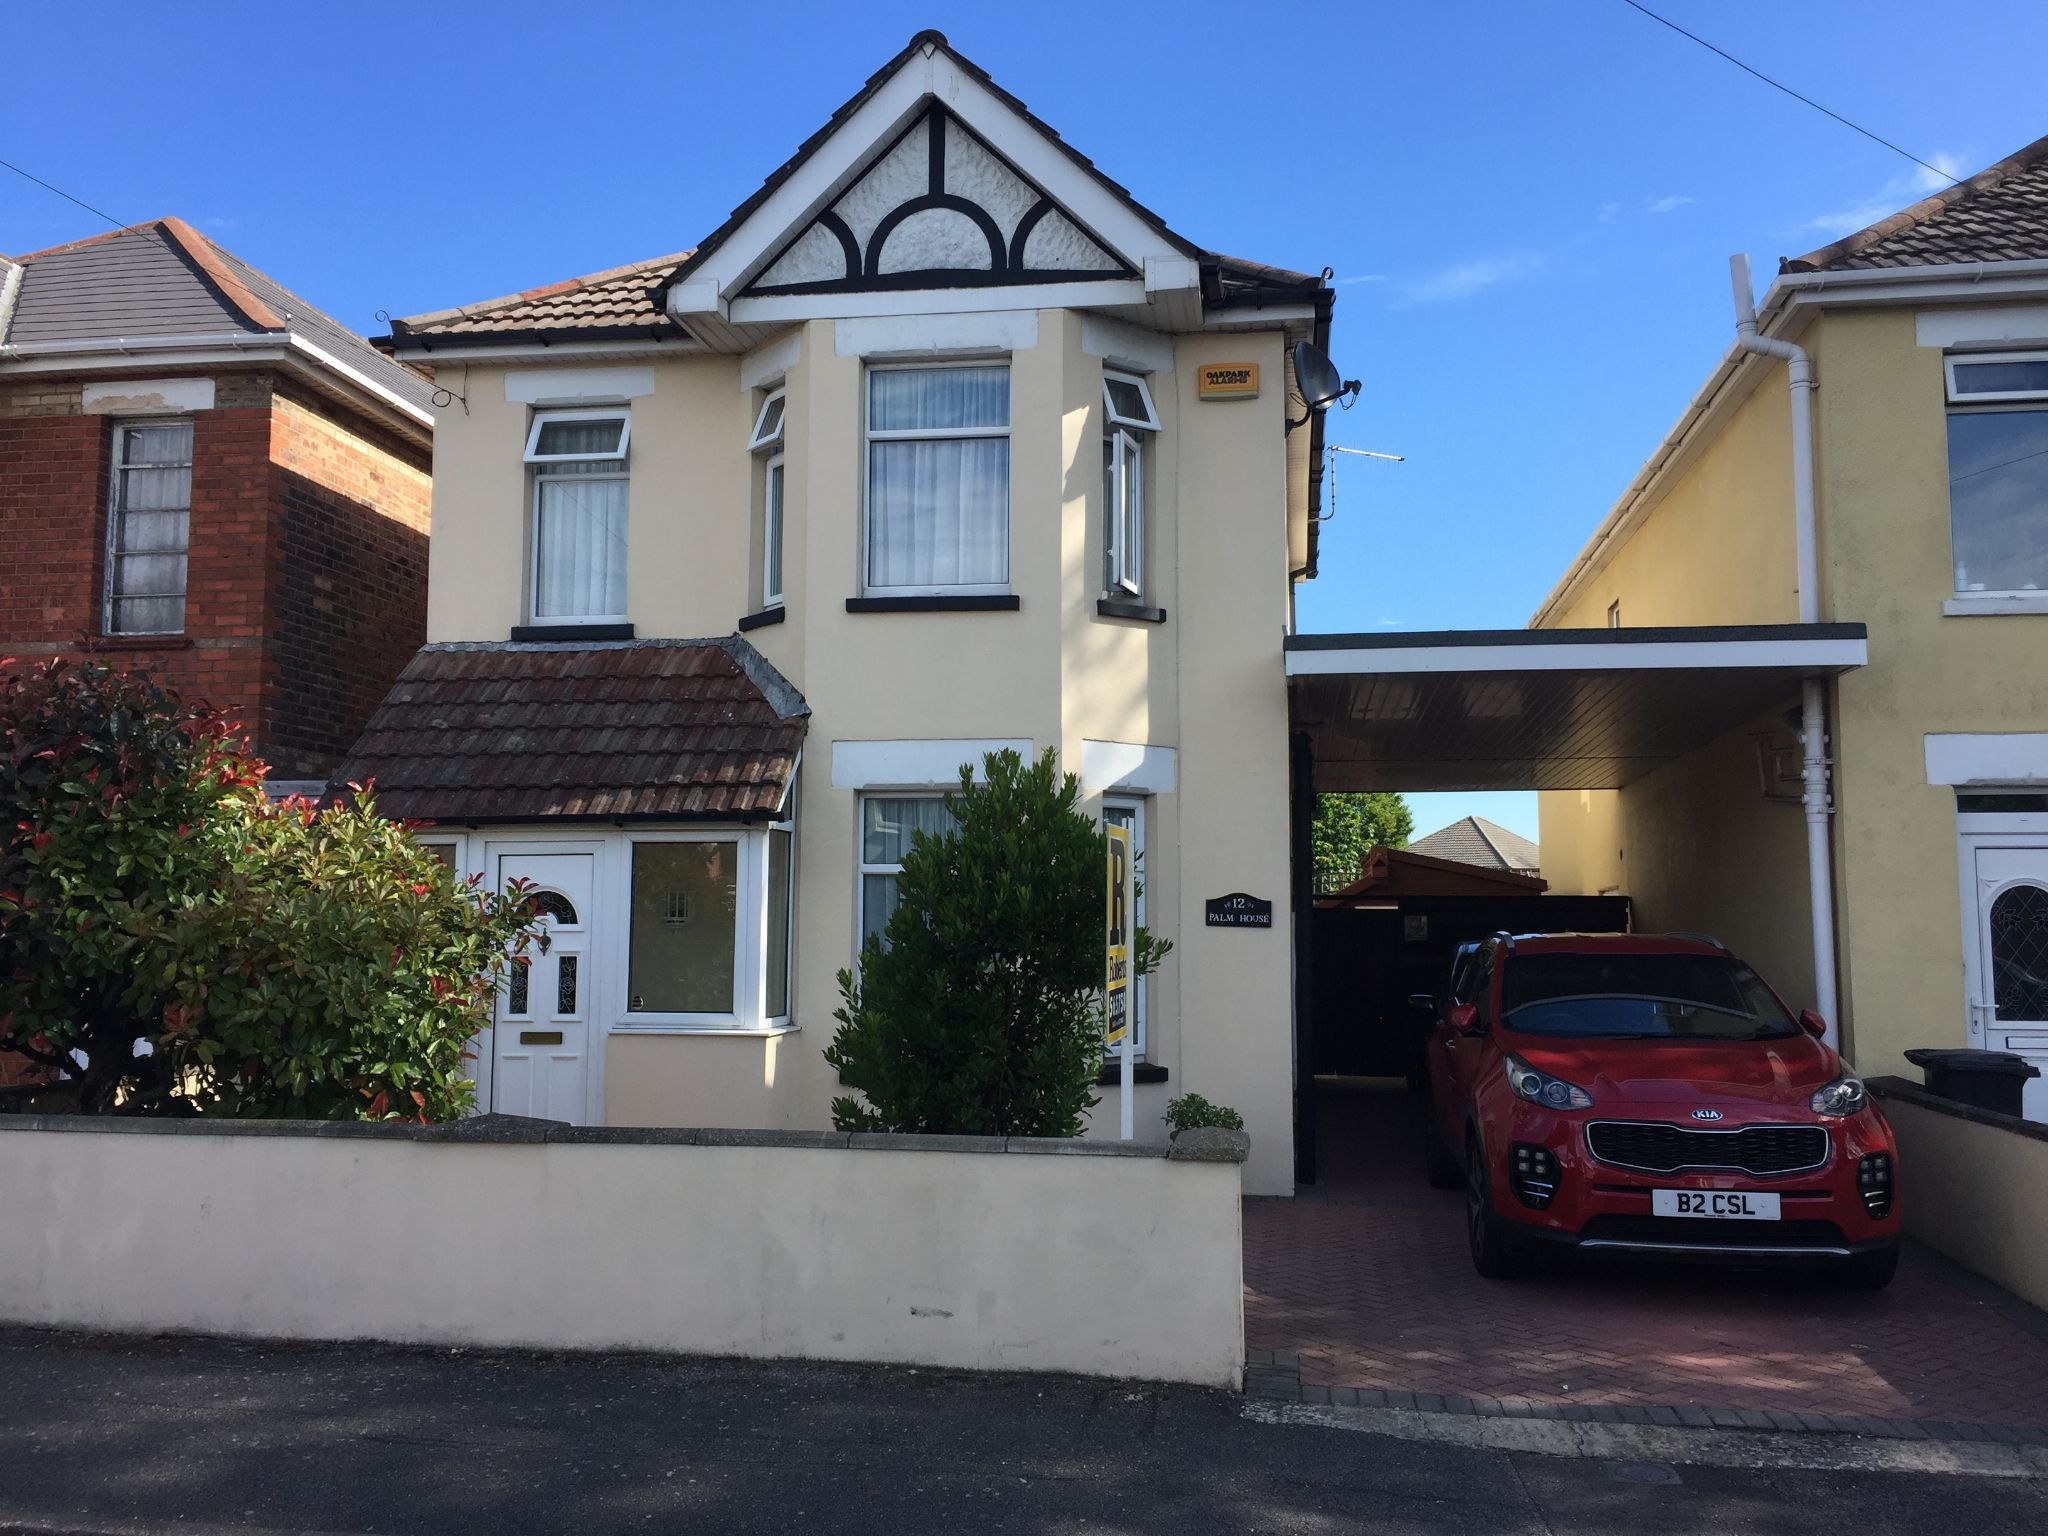 12 Shaftesbury Road, Charminster, Bournemouth, BH8 8SS